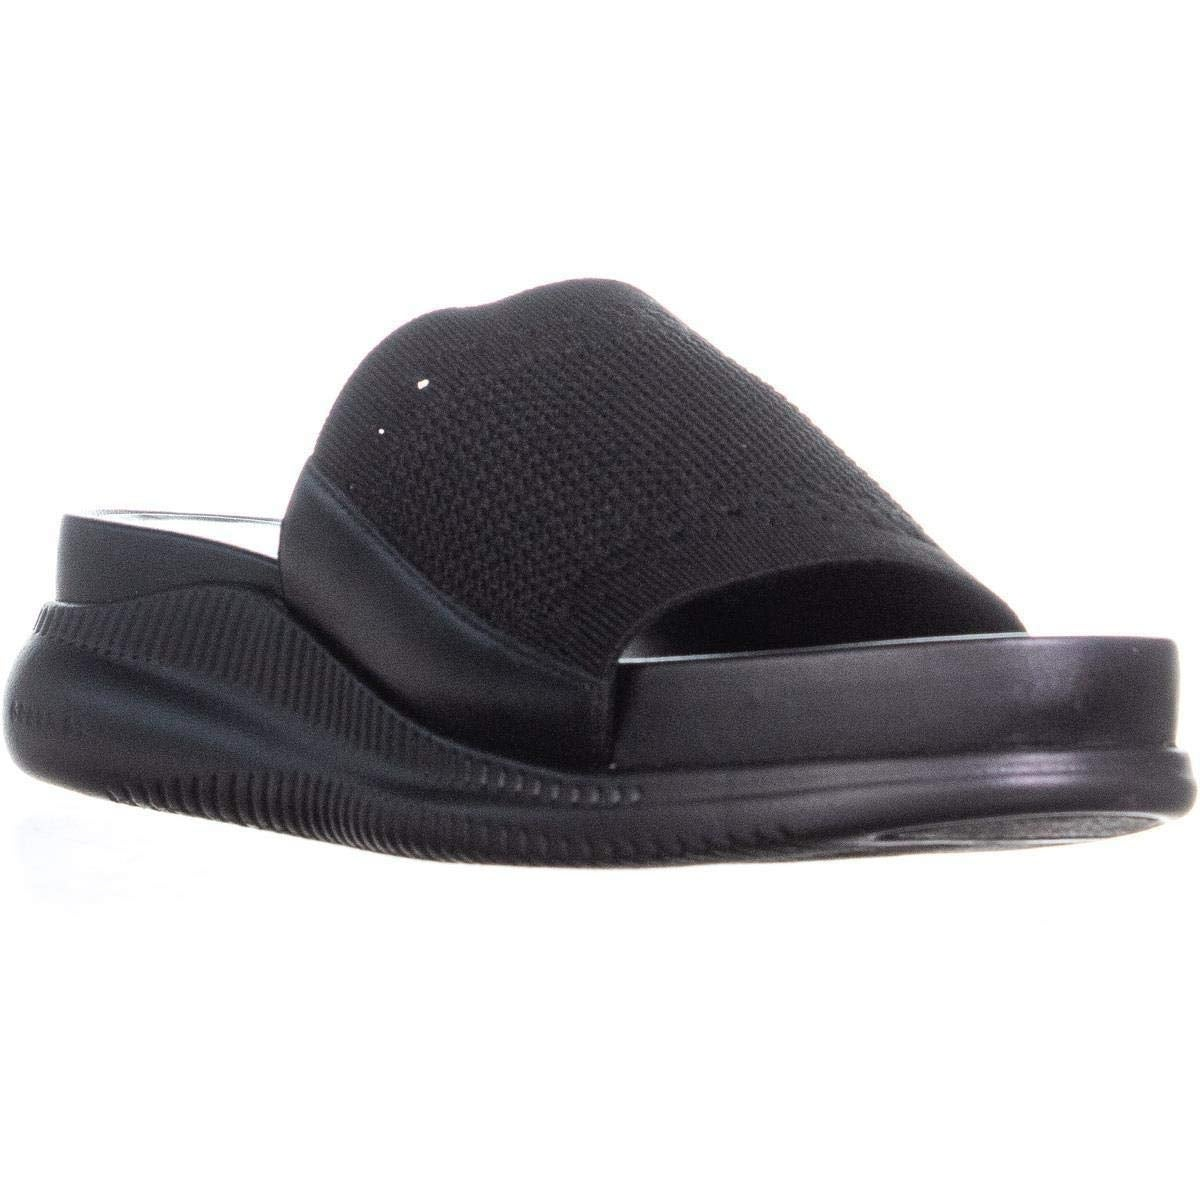 7c89a31b5 Shop Cole Haan Womens 2 Zerogrand St Open Toe Casual Slide Sandals - Free  Shipping Today - Overstock - 25560002